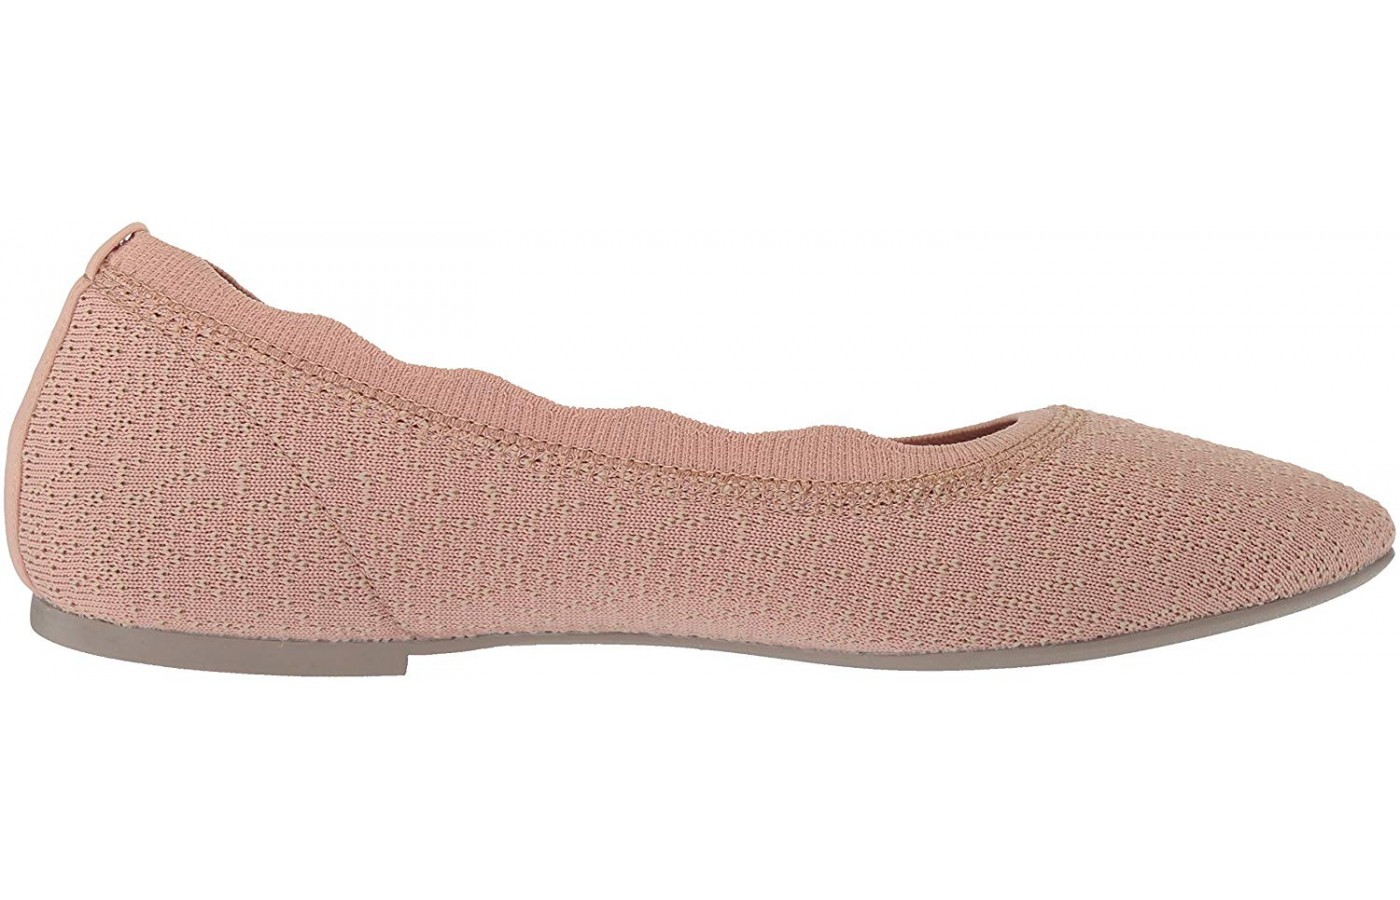 Skechers Cleo Skimmer Outsole